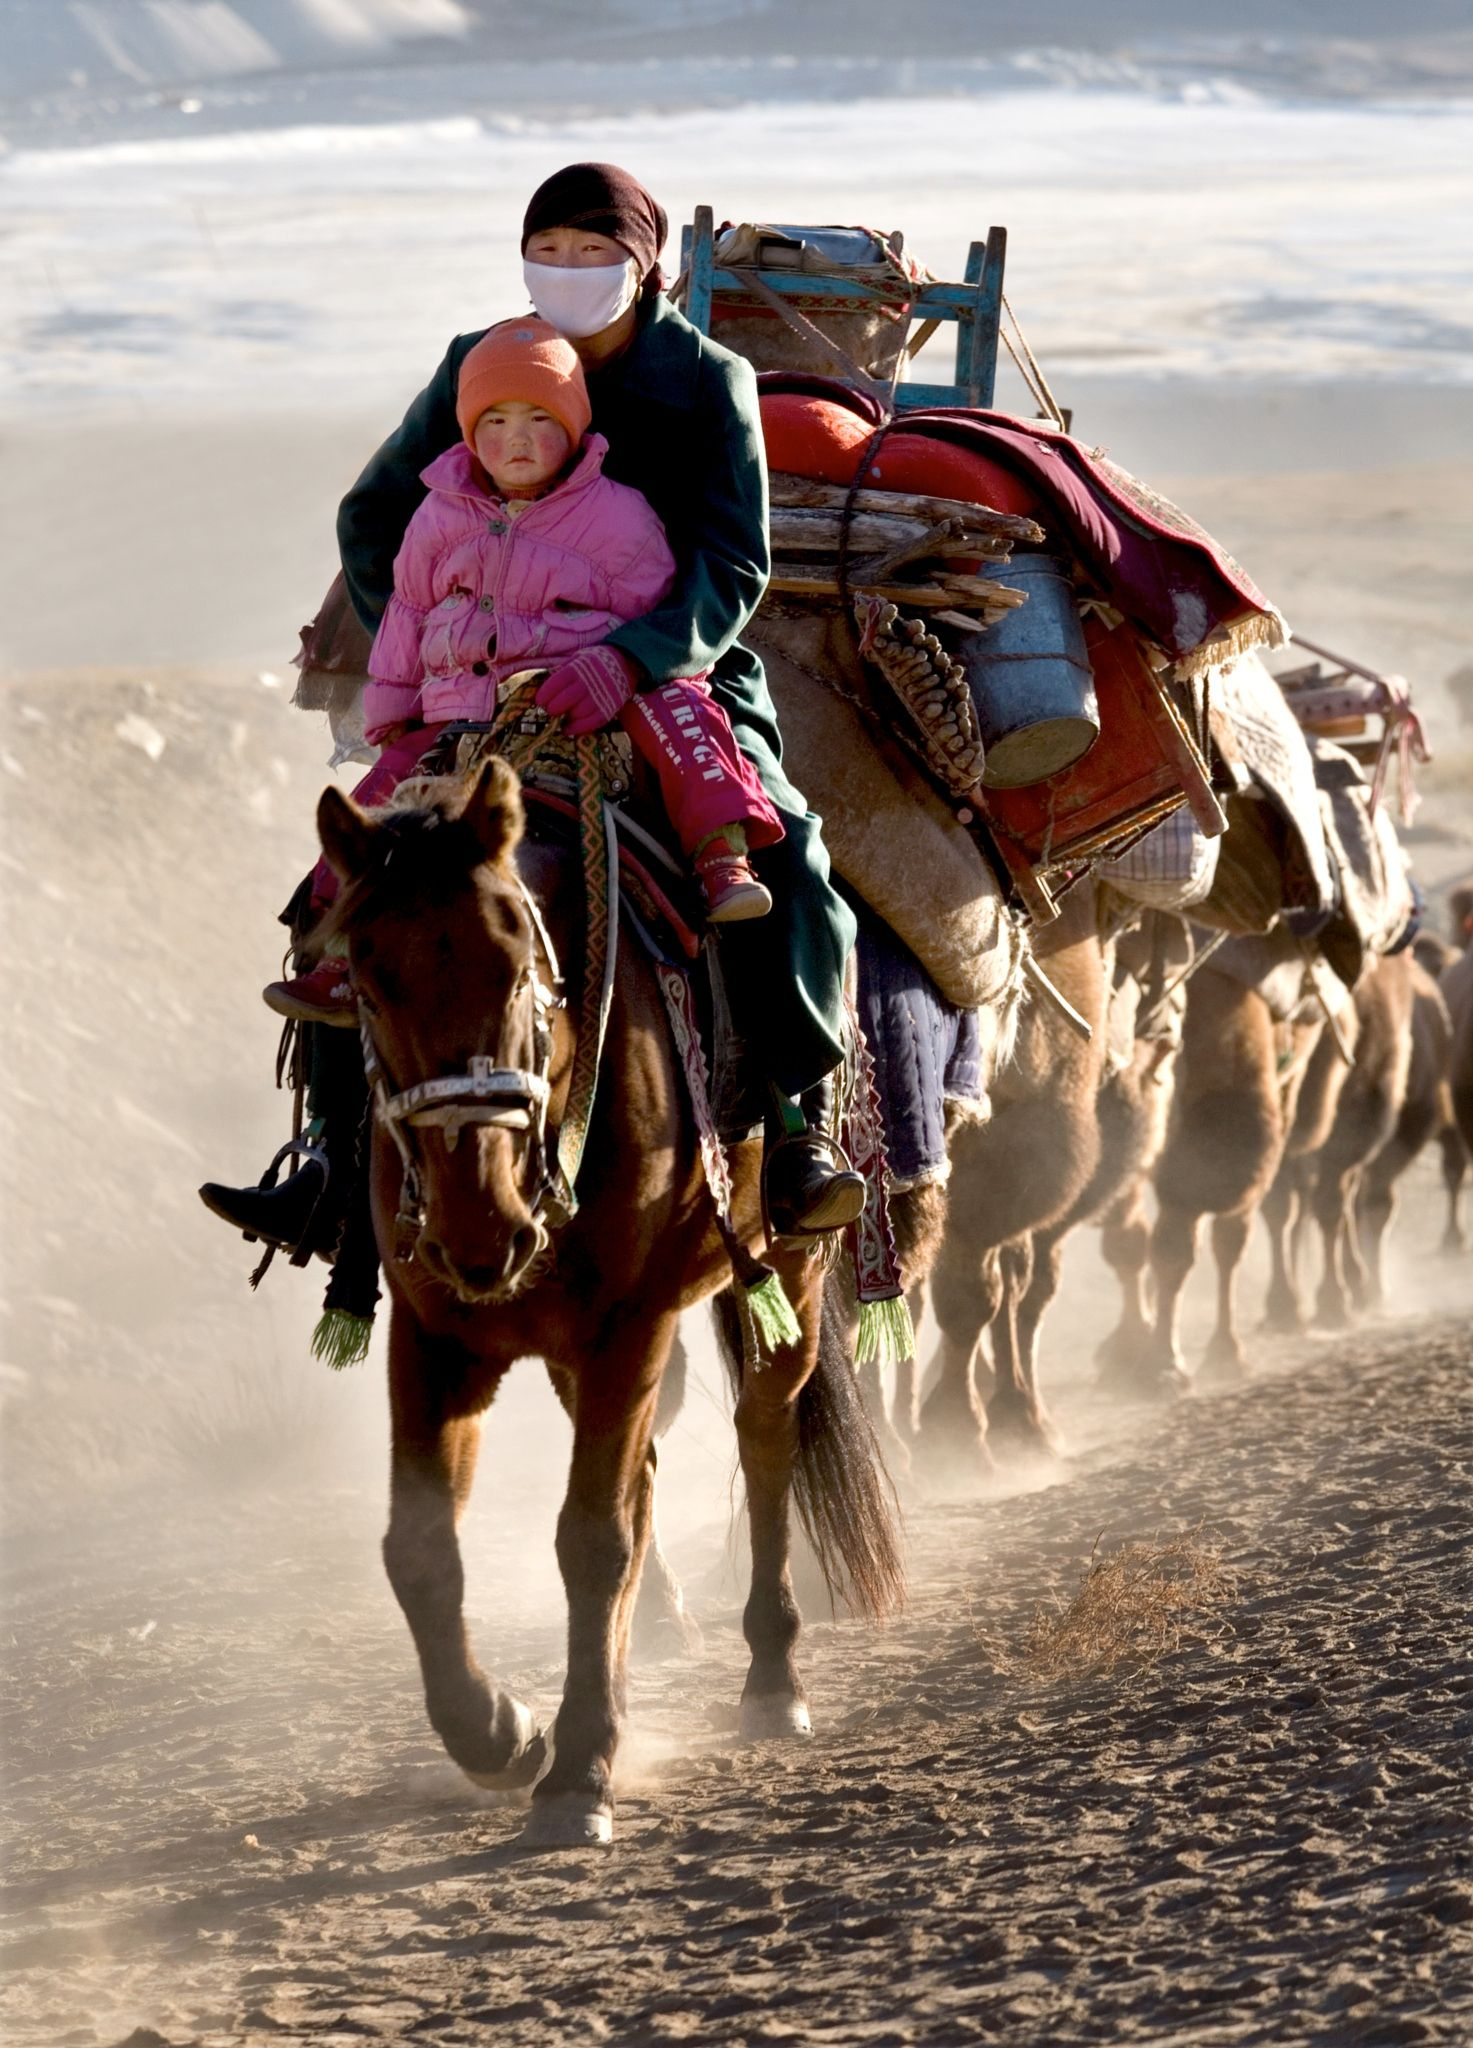 Migration Before the winter, nomads migrate south with